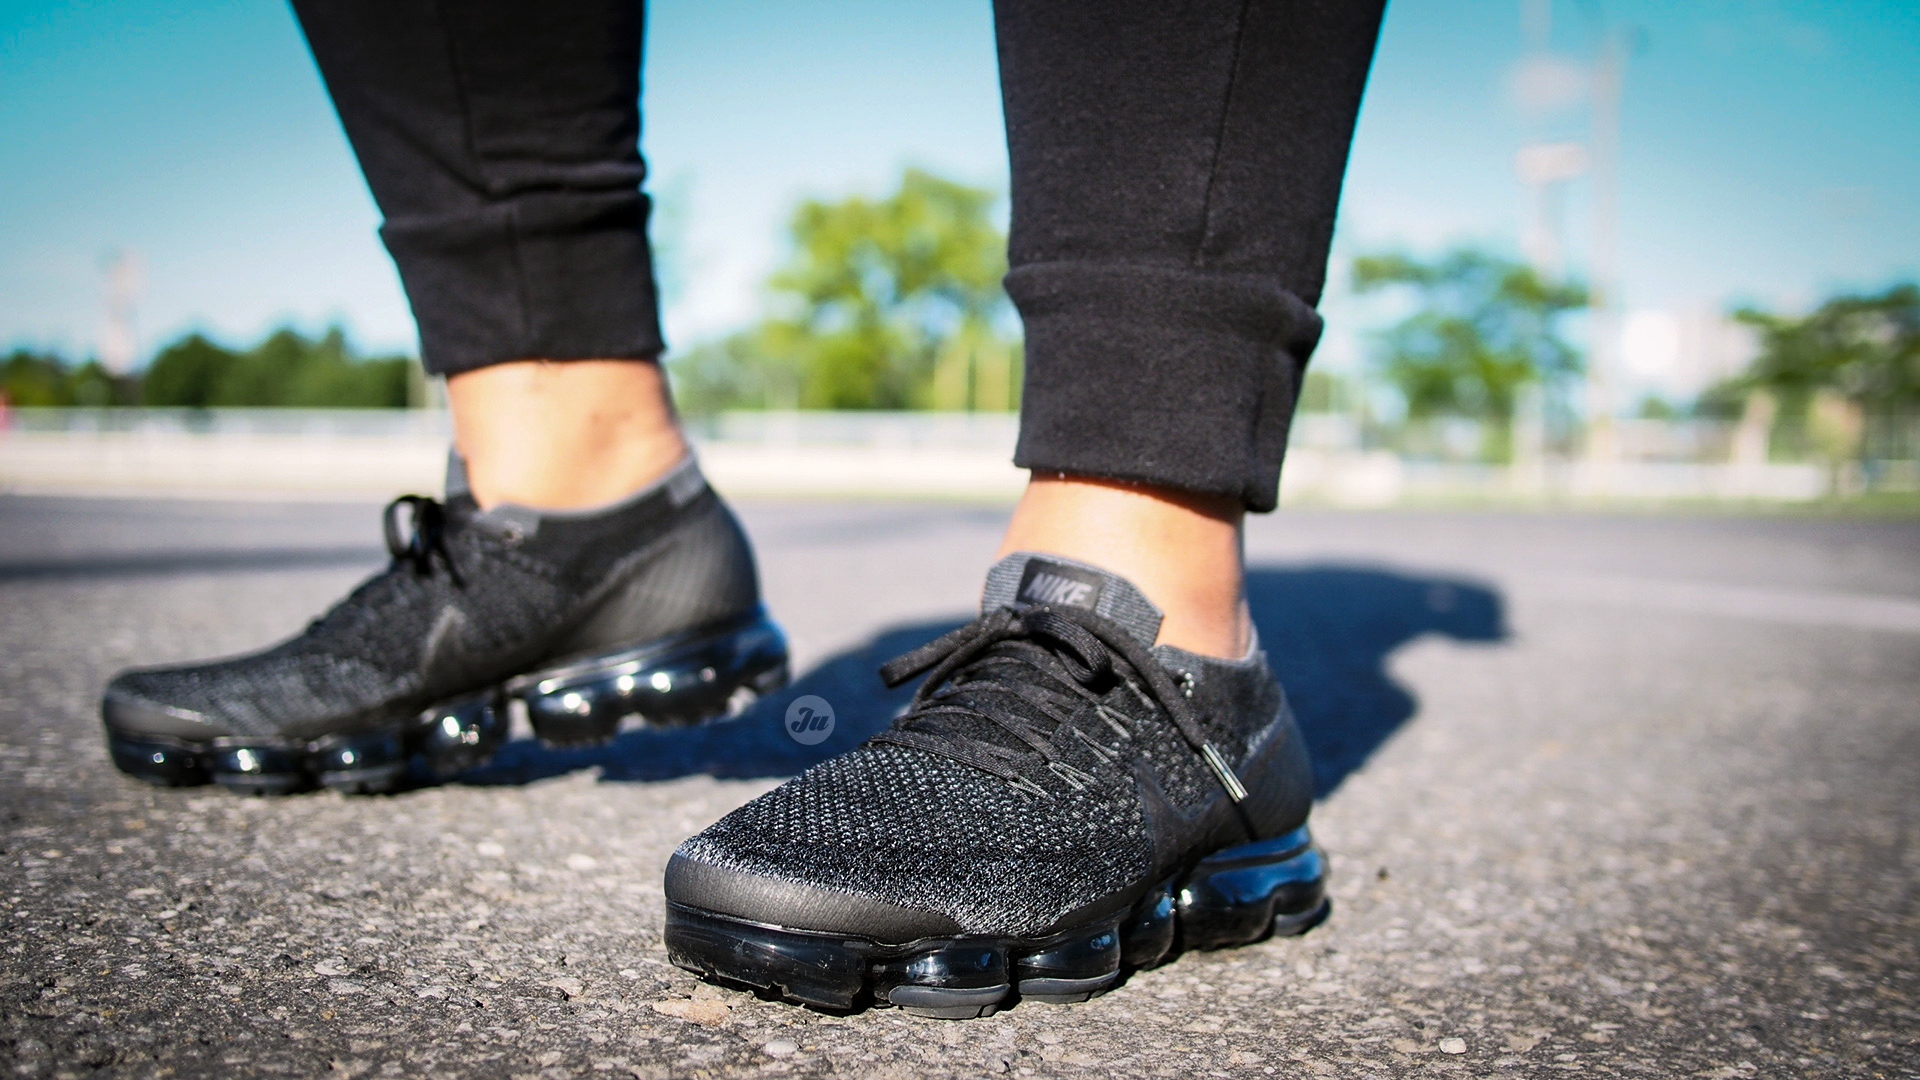 finest selection 8884d f64f9 Nike Air VaporMax - an update & review on my new go-to ...